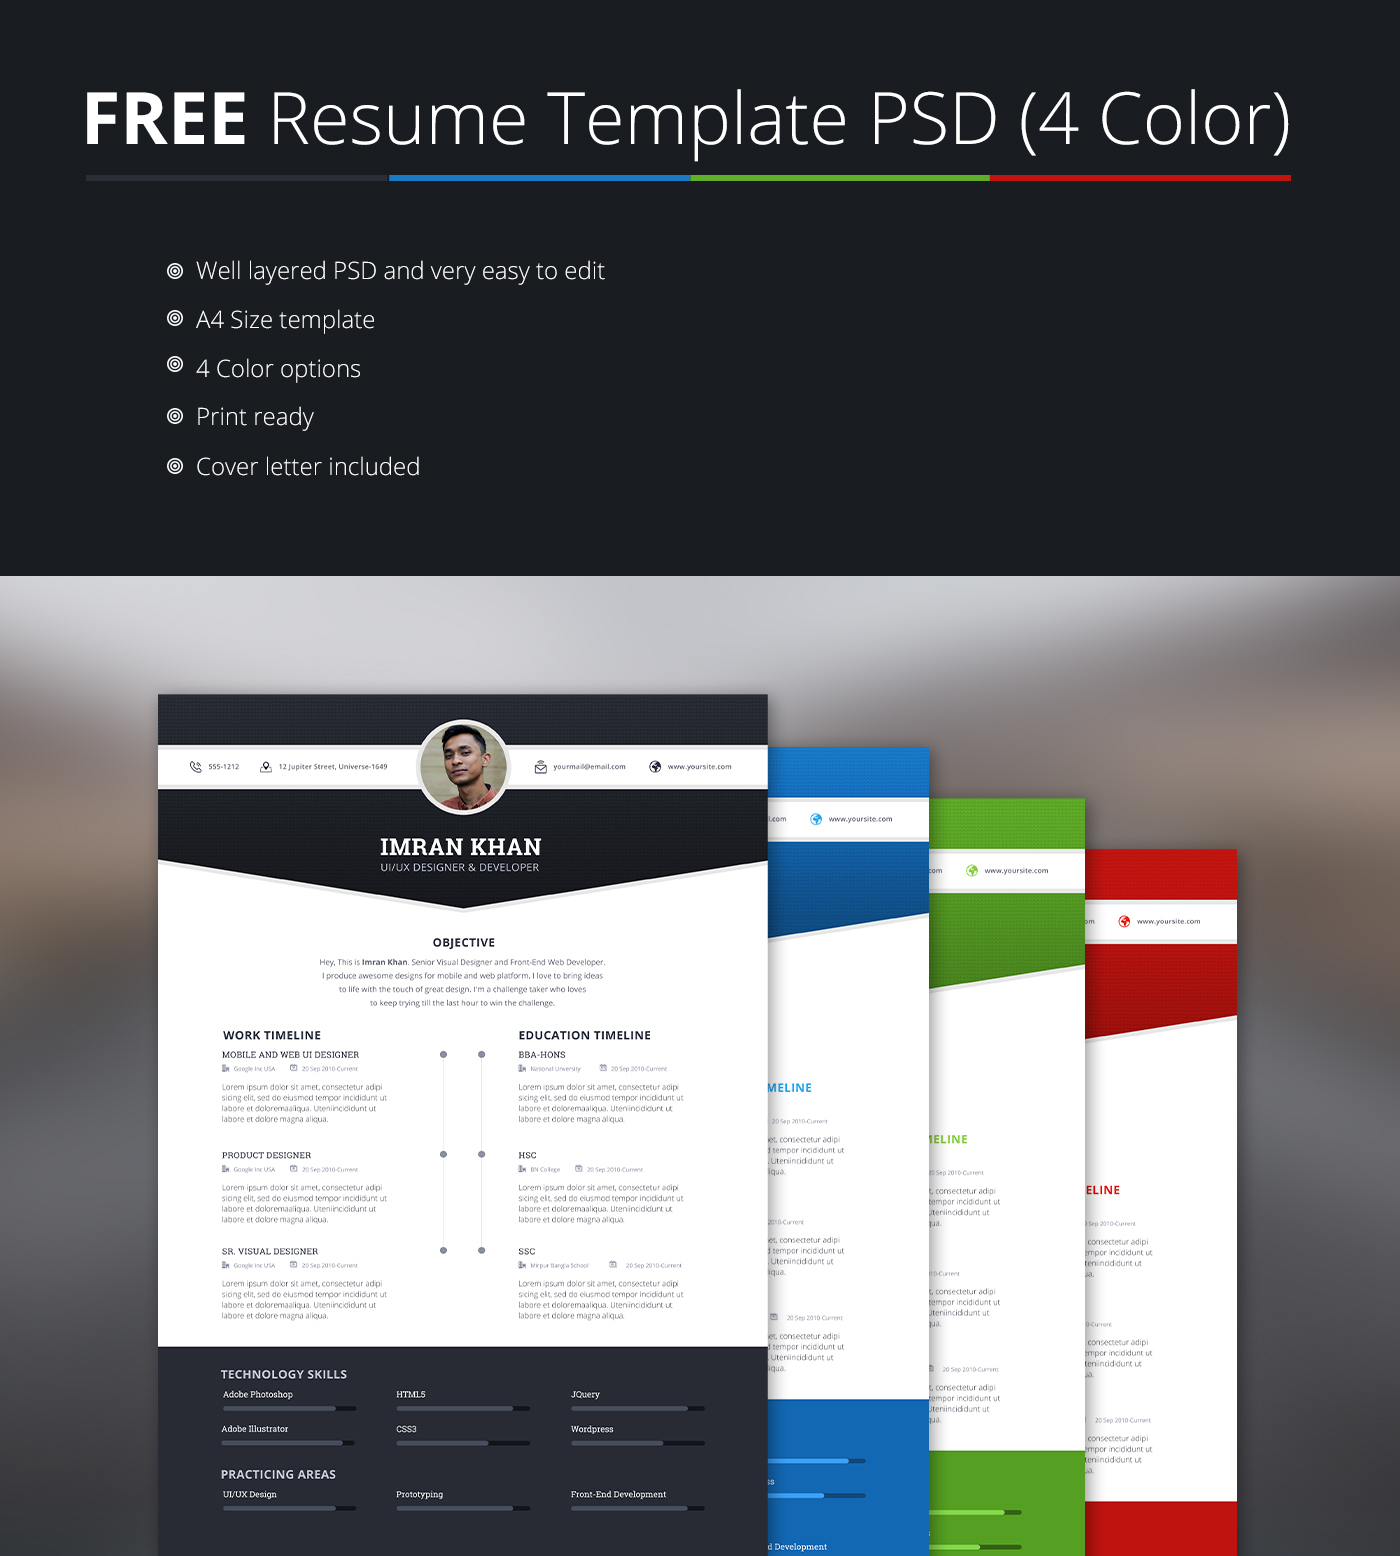 Free resume template psd 4 colors on behance altavistaventures Image collections